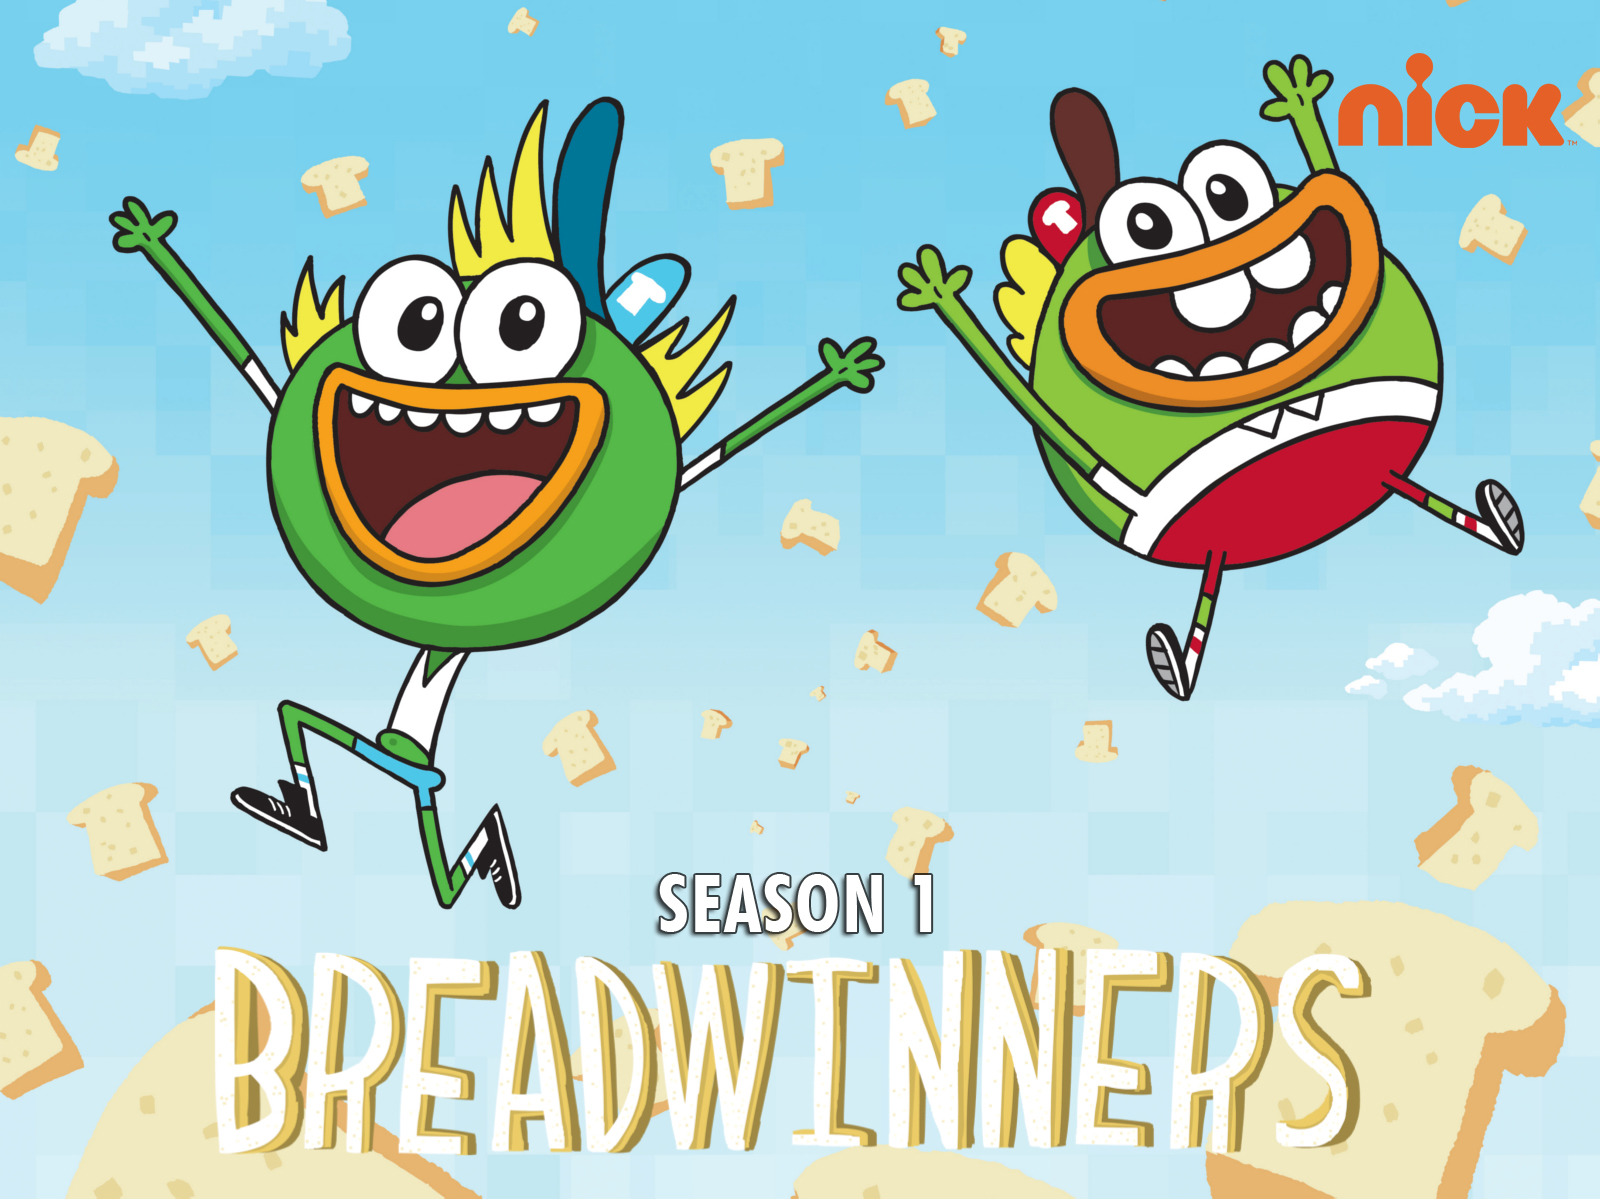 Prime Video: Breadwinners - Season 2